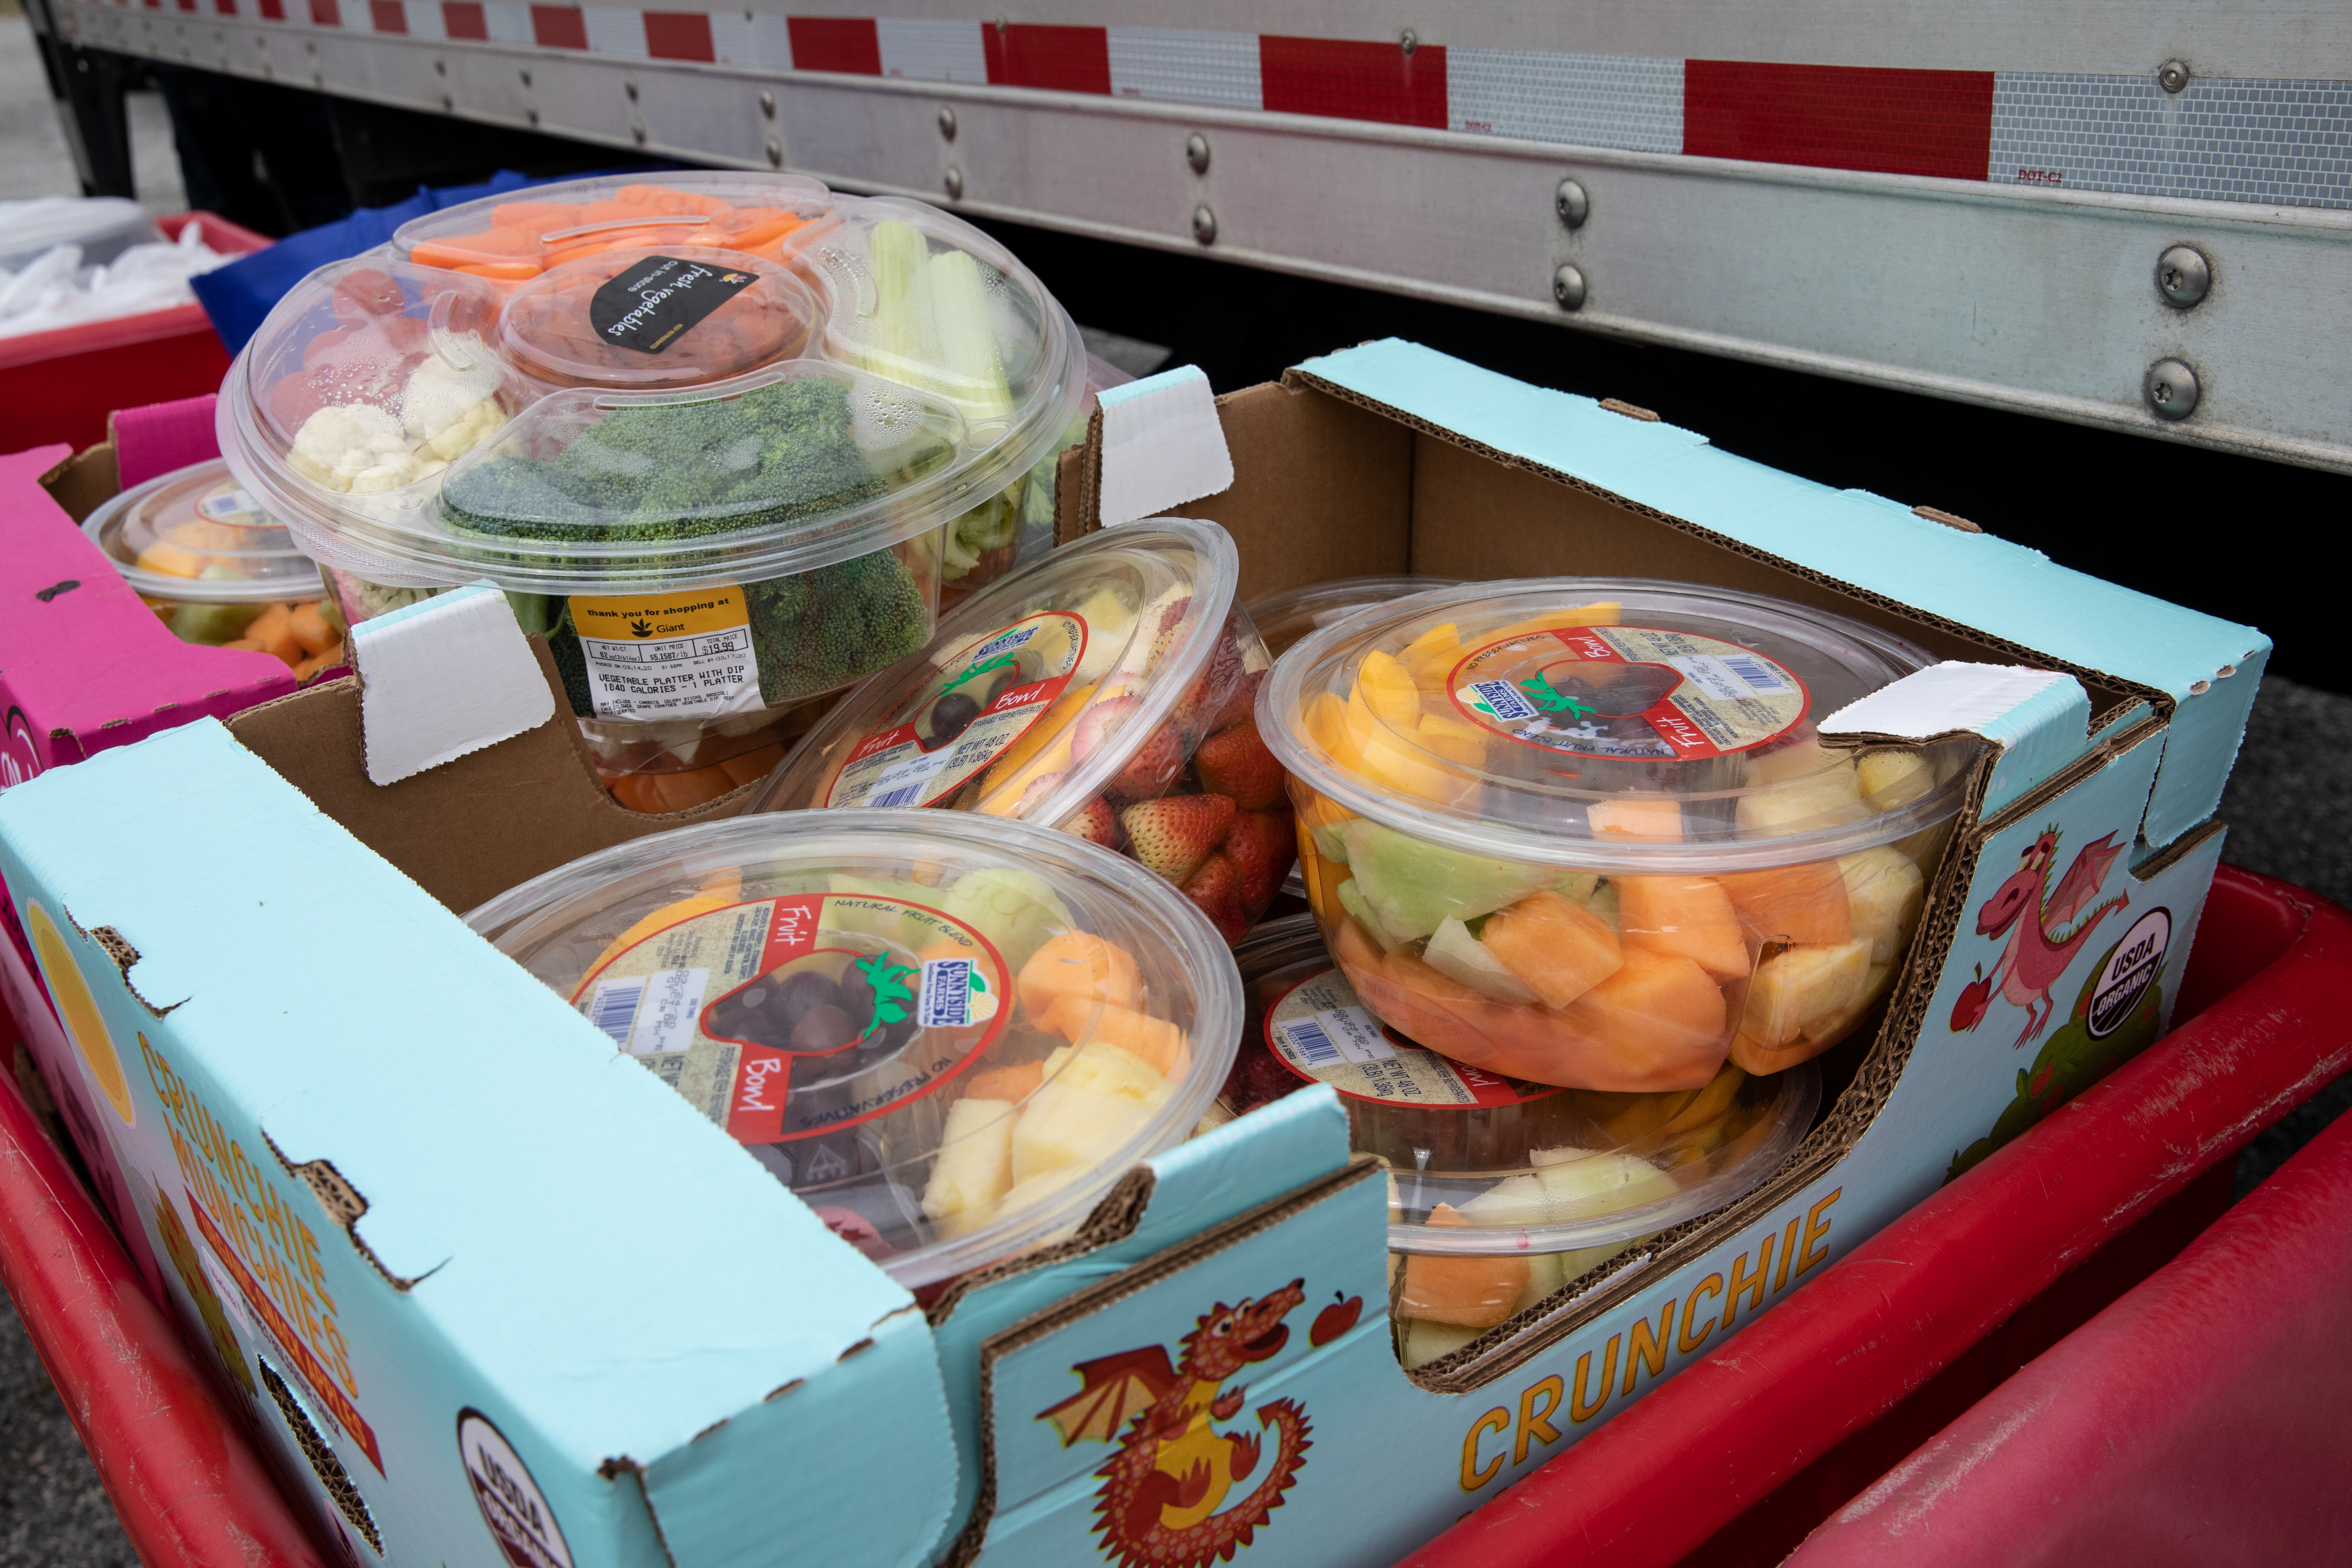 Fruit and vegetables distributed to those in need